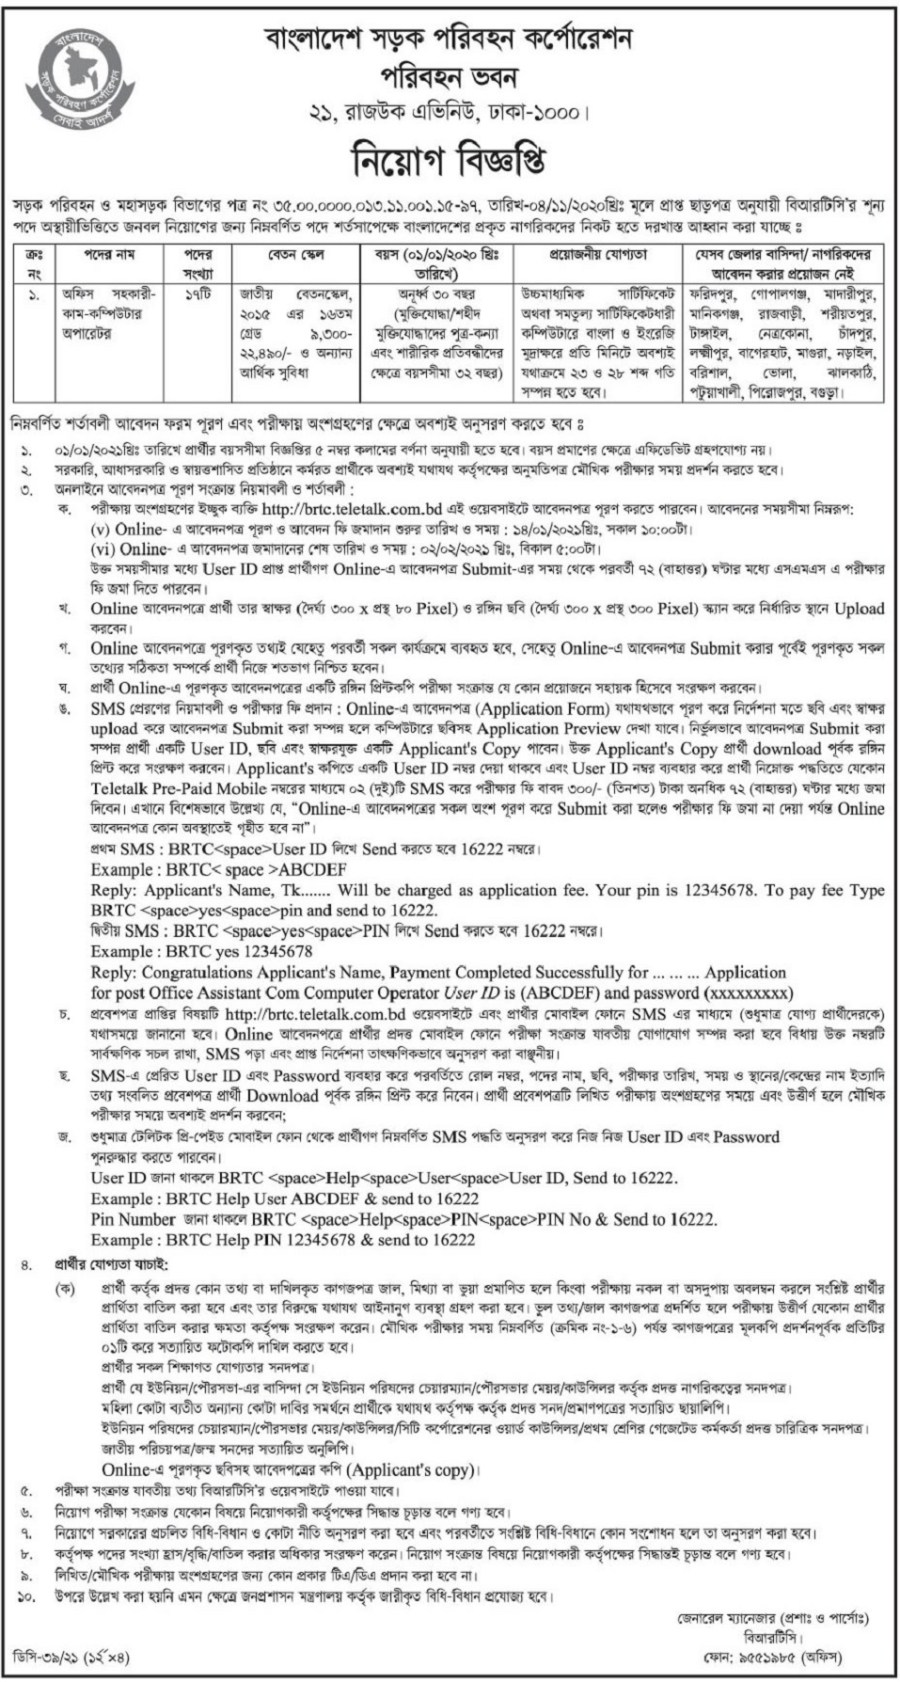 Bangladesh Road Transport Corporation (BRTC) Job Circular February 2021